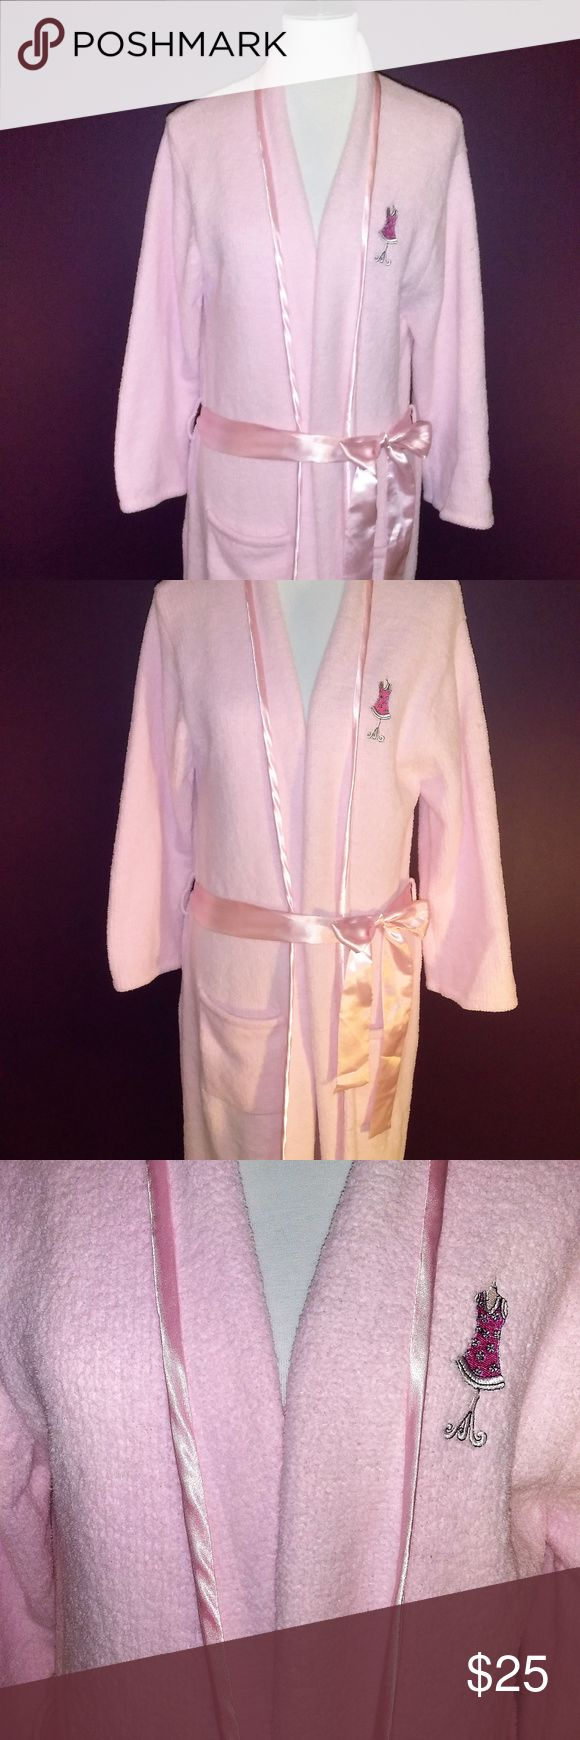 Ooo Lala - Rare Vintage cabi Pink Terri Robe NWOT Super soft & cozy vintage cabi cotton candy pink plush terry robe ♥ NWOT ♥  Size Medium - Made back in the day when Carol was still the head honcho, given as awards to stylists, so these are hard to find. Ready to add glam to your cold mornings! Darling pink satin trim with matching belt, 2 roomy front pockets.  Fabric: 100% Poly Micro   Garment Care: Machine Wash - Tumble Dry  ♥ Please visit my closet again soon - lots of excellent deals on…